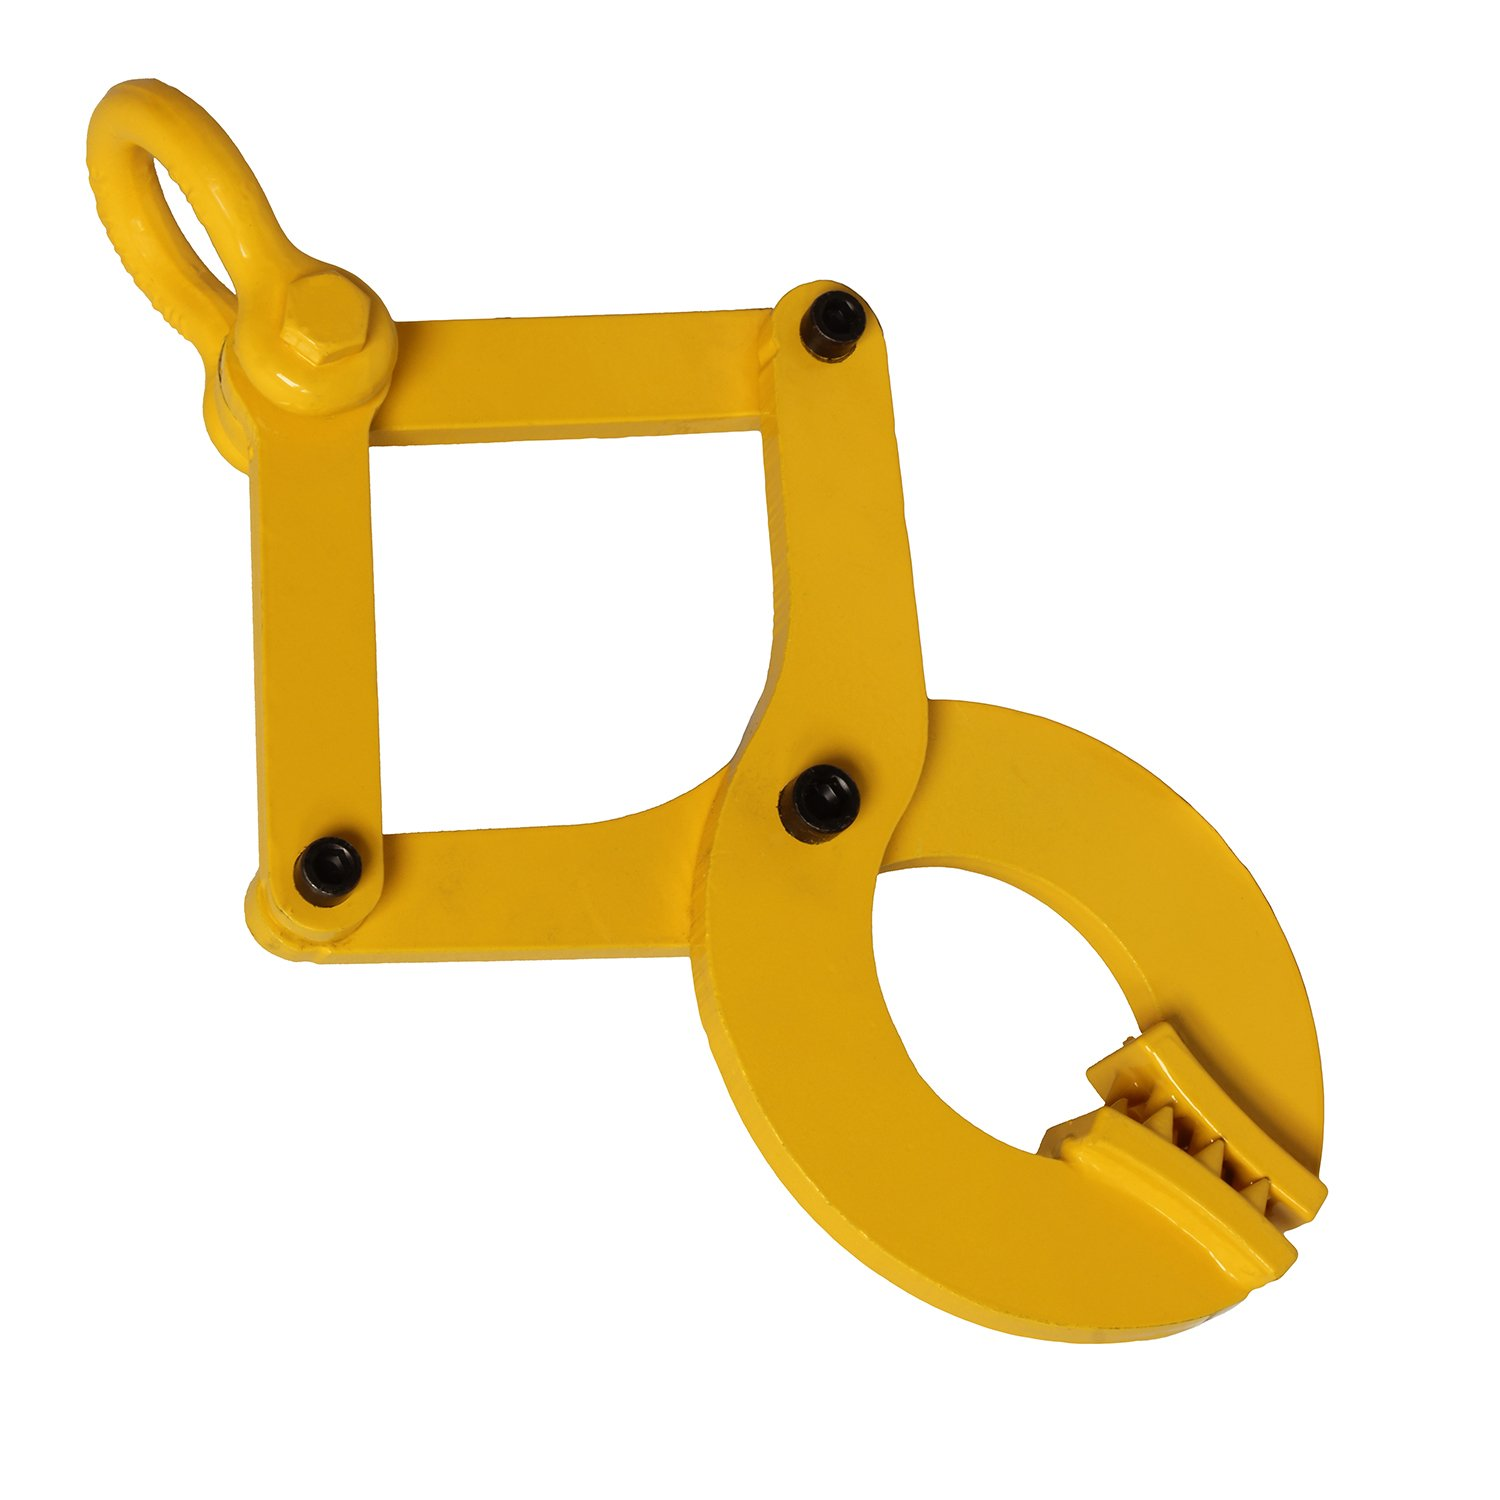 Bob's | Pallet Puller Clamp in Yellow, 6,000 lb pound Pulling Capacity, Pallet Grabber Hook Puller Tool for Forklift Chain